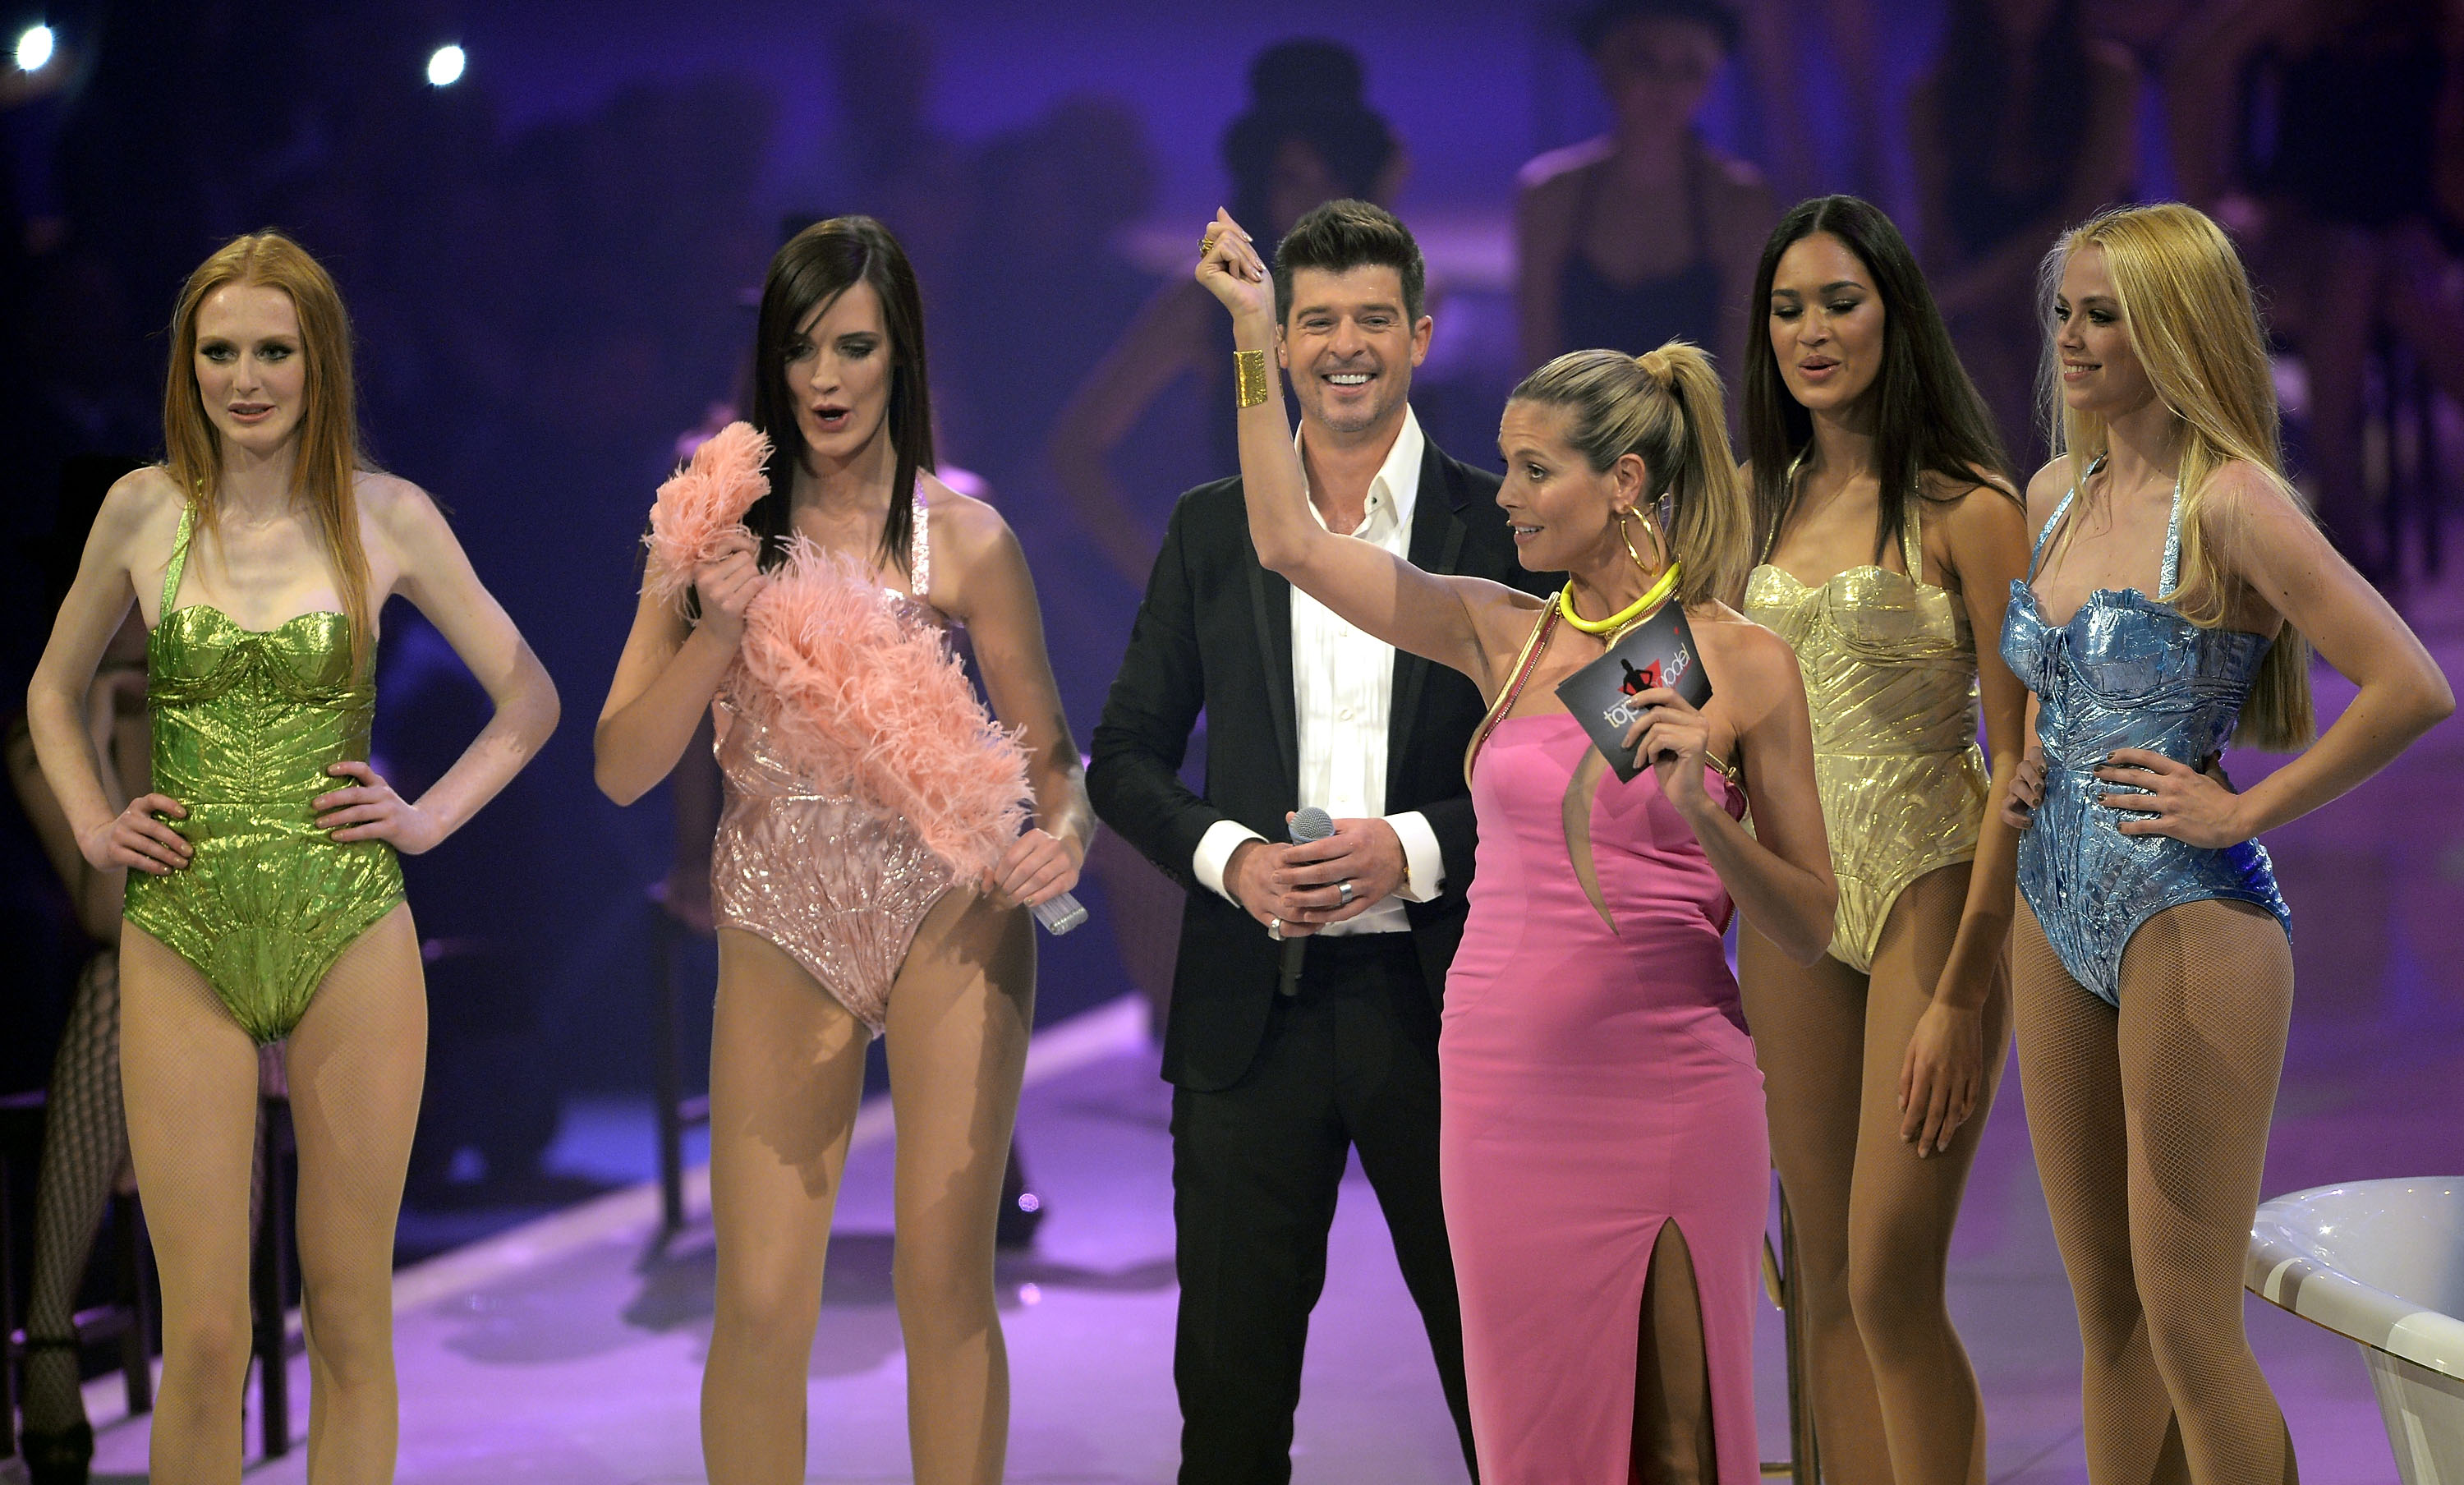 Germany's Next Top Model finale